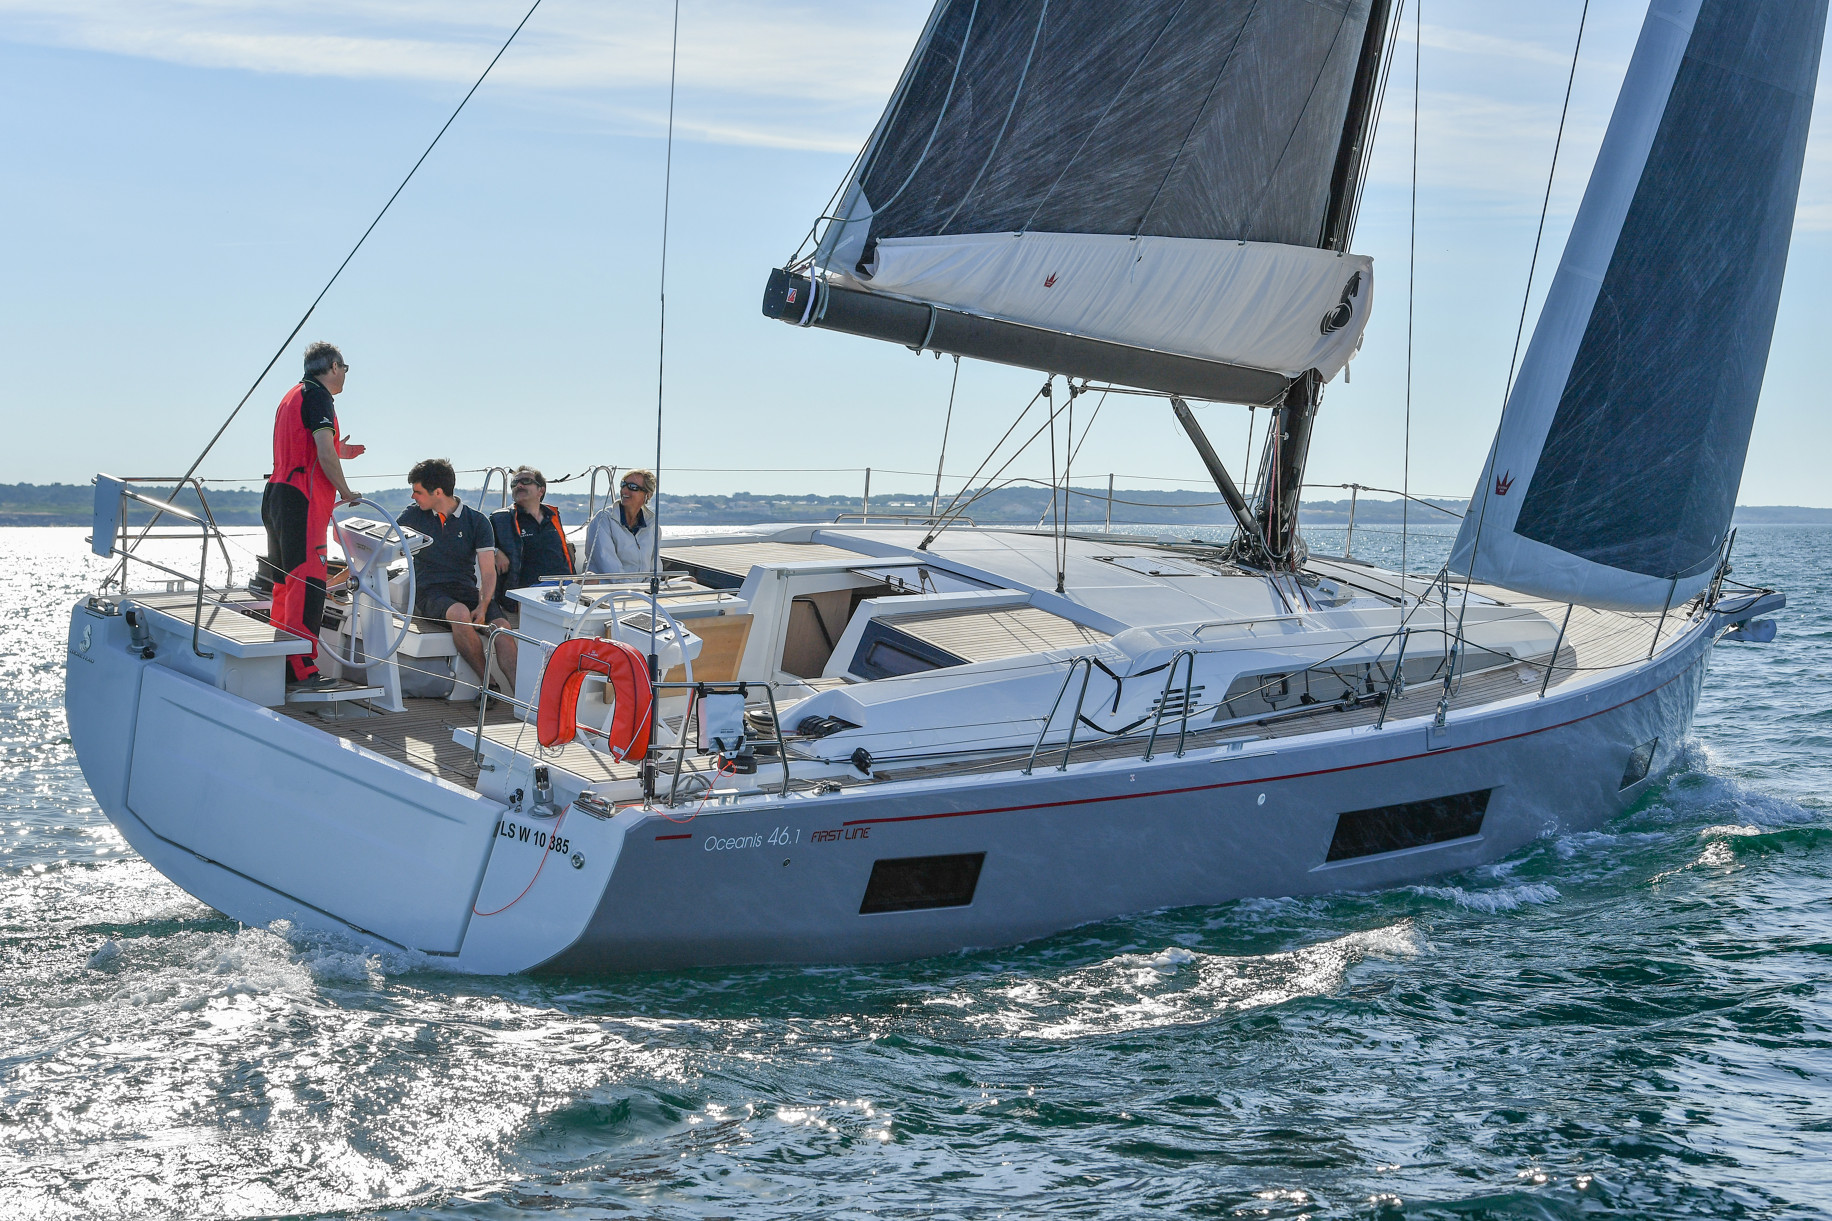 Demo day sail was a hit!